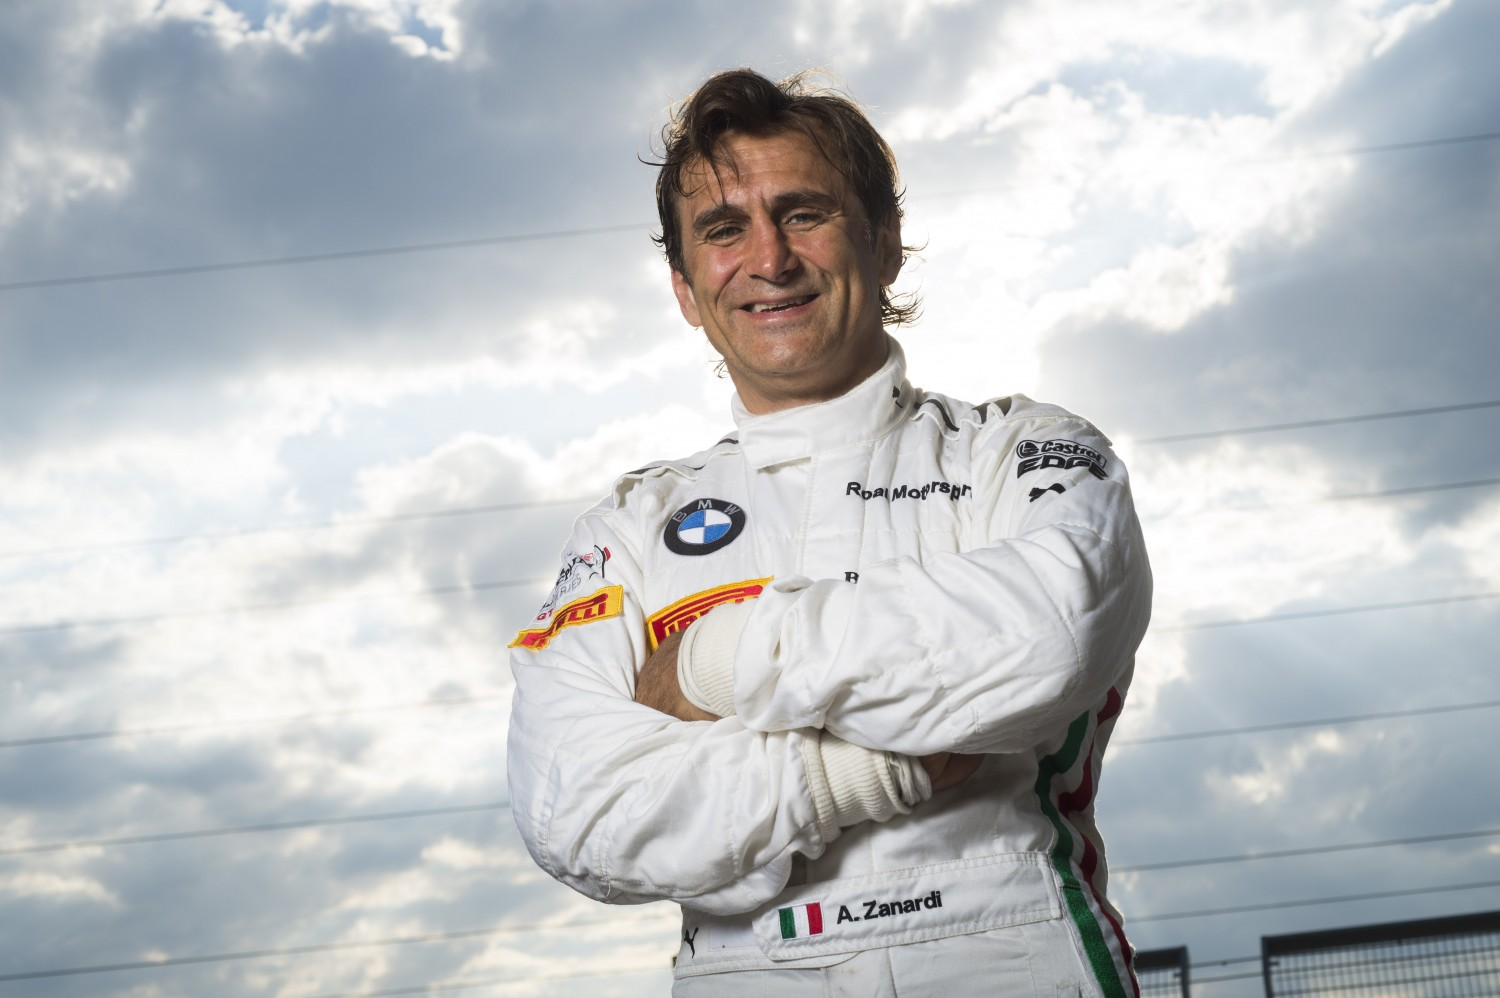 BMW works driver Alessandro Zanardi to compete in the Total 24 Hours of Spa